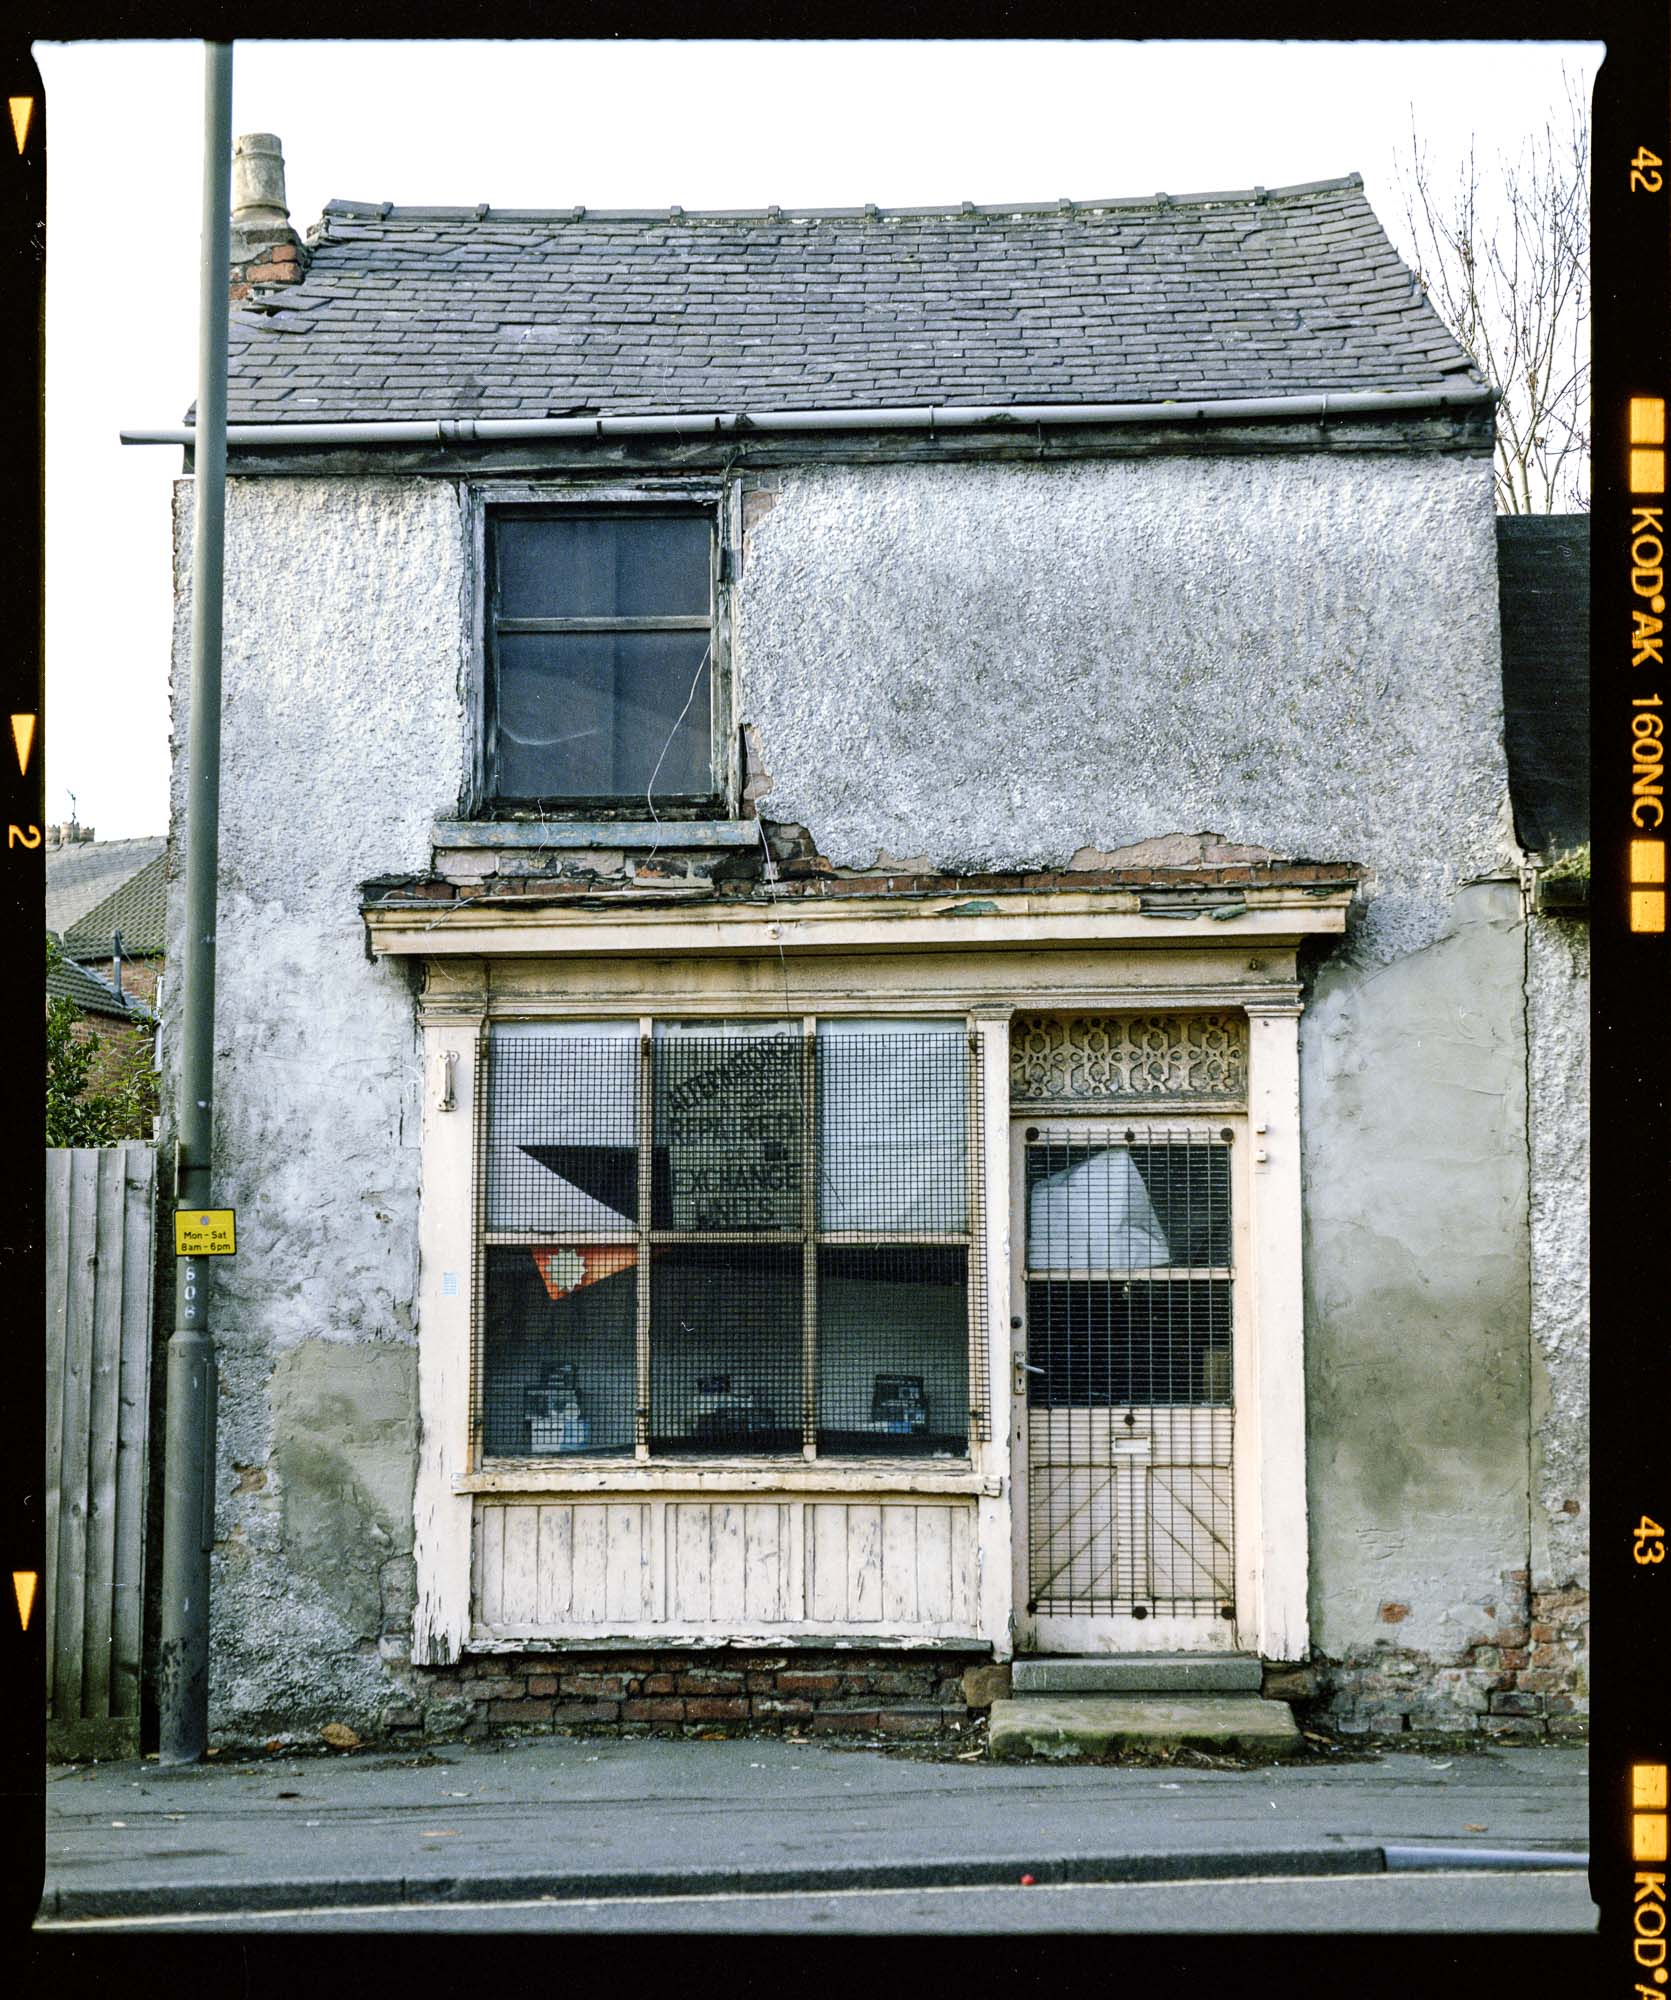 derelict shop shot on a Mamiya RB67 and kodak portra 160nc 120 film, ilkeston, derbyshire